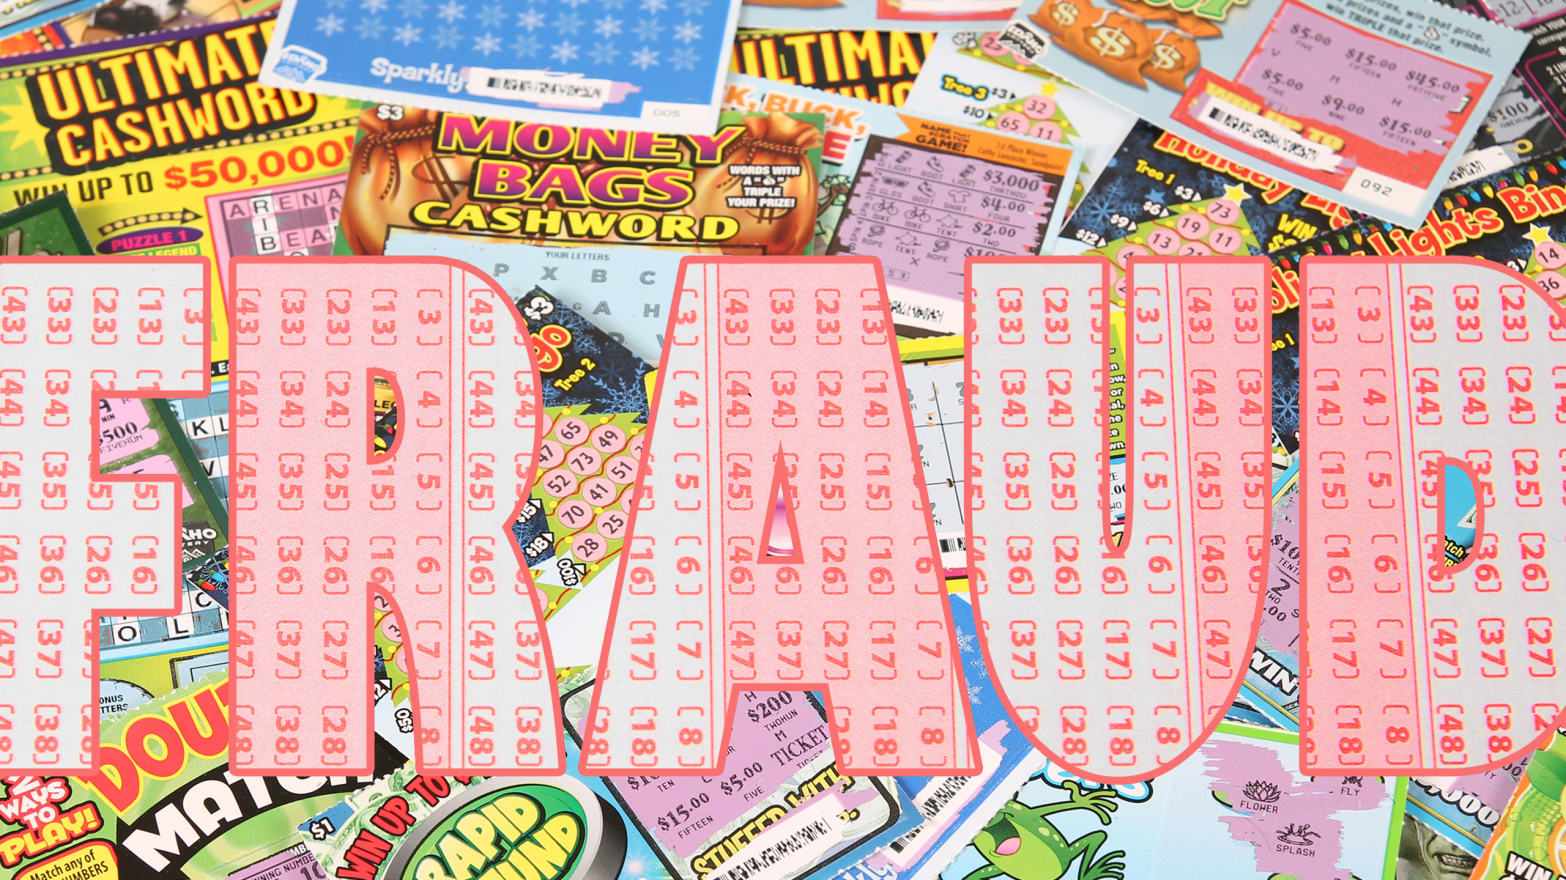 IRS Scammed With Losing Lotto Tickets